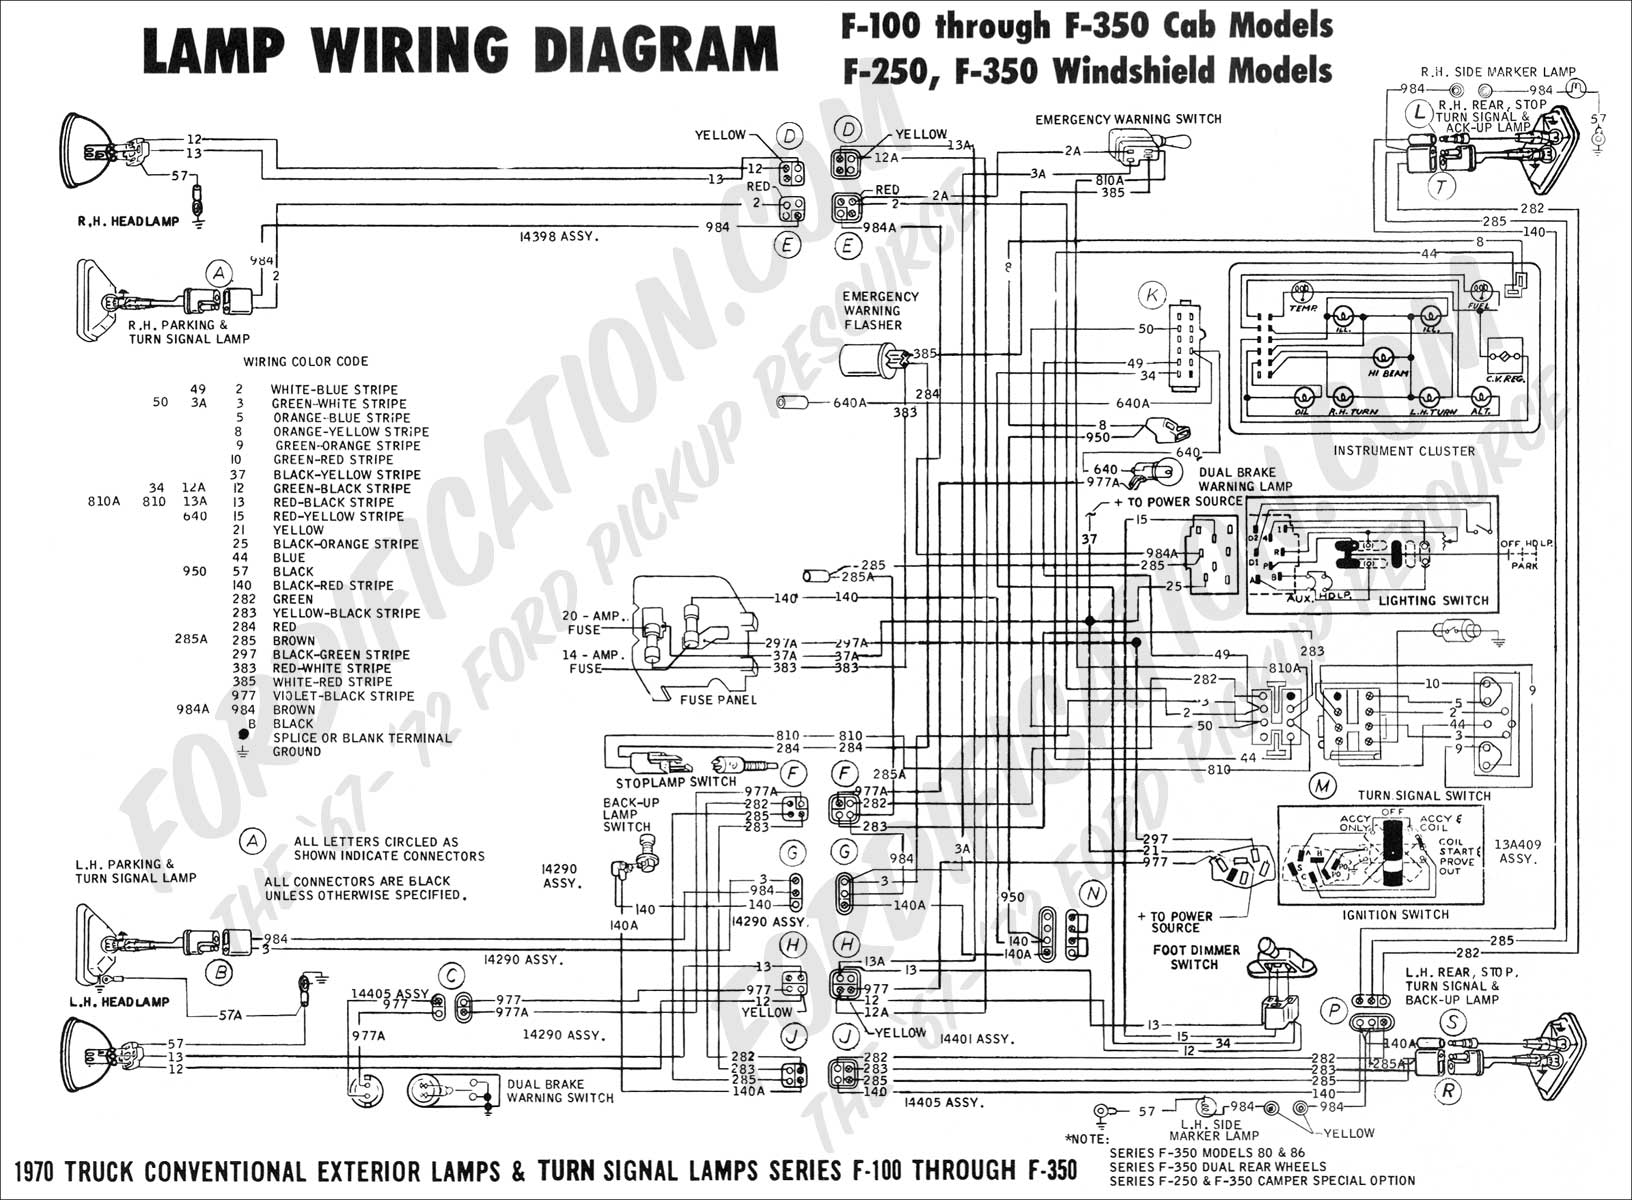 2002 ford pick up fuse box ford truck technical drawings and schematics section h wiring 1970 f 100 f250 lamp wiring 01